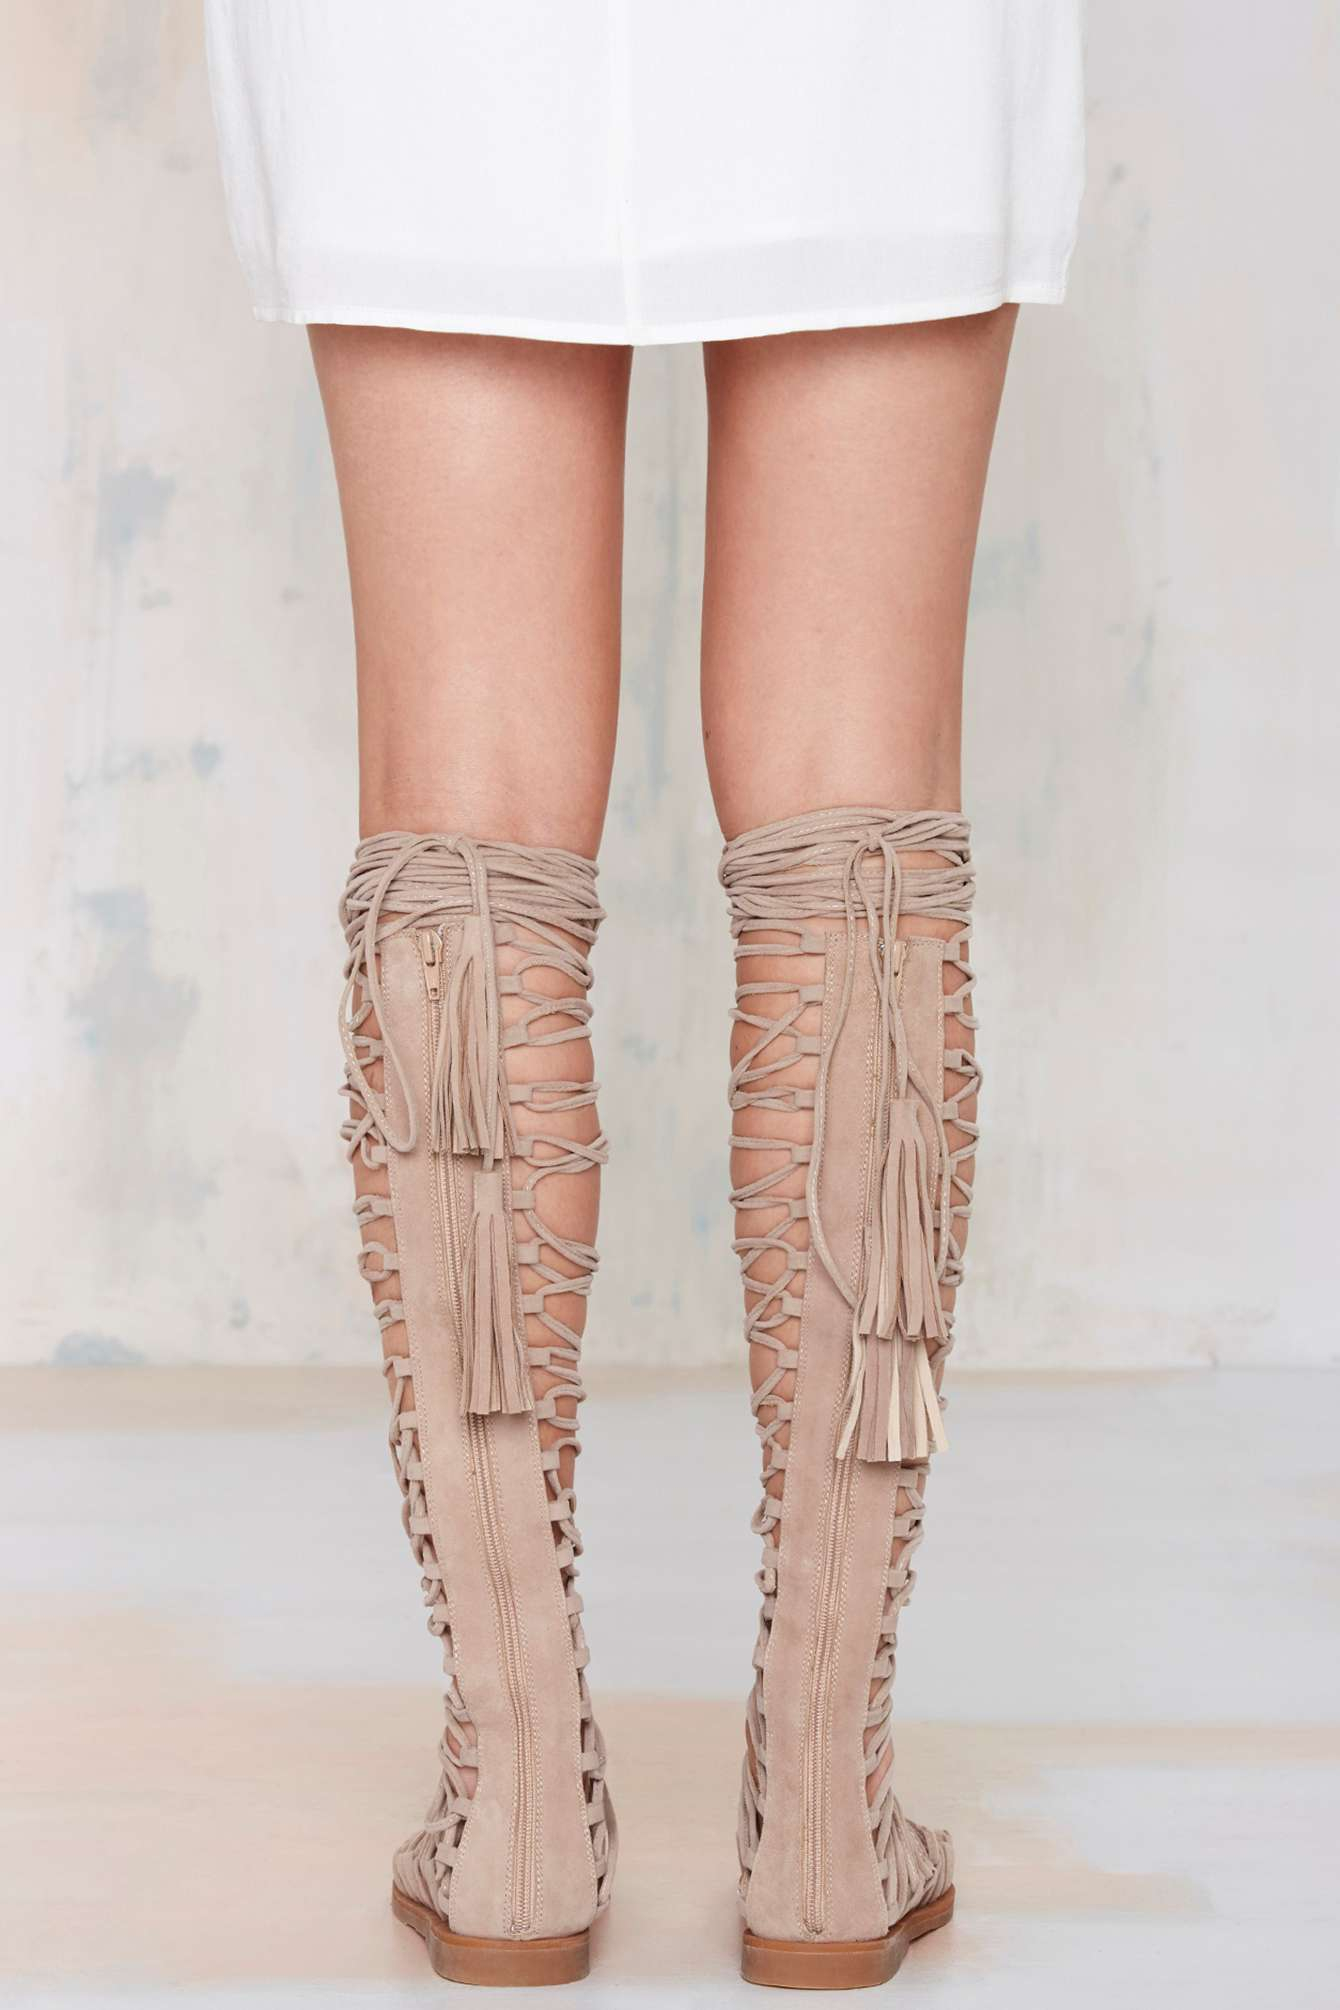 4e618b0585b Lyst - Nasty Gal Jeffrey Campbell Valeria Suede Lace-Up Sandal in ...